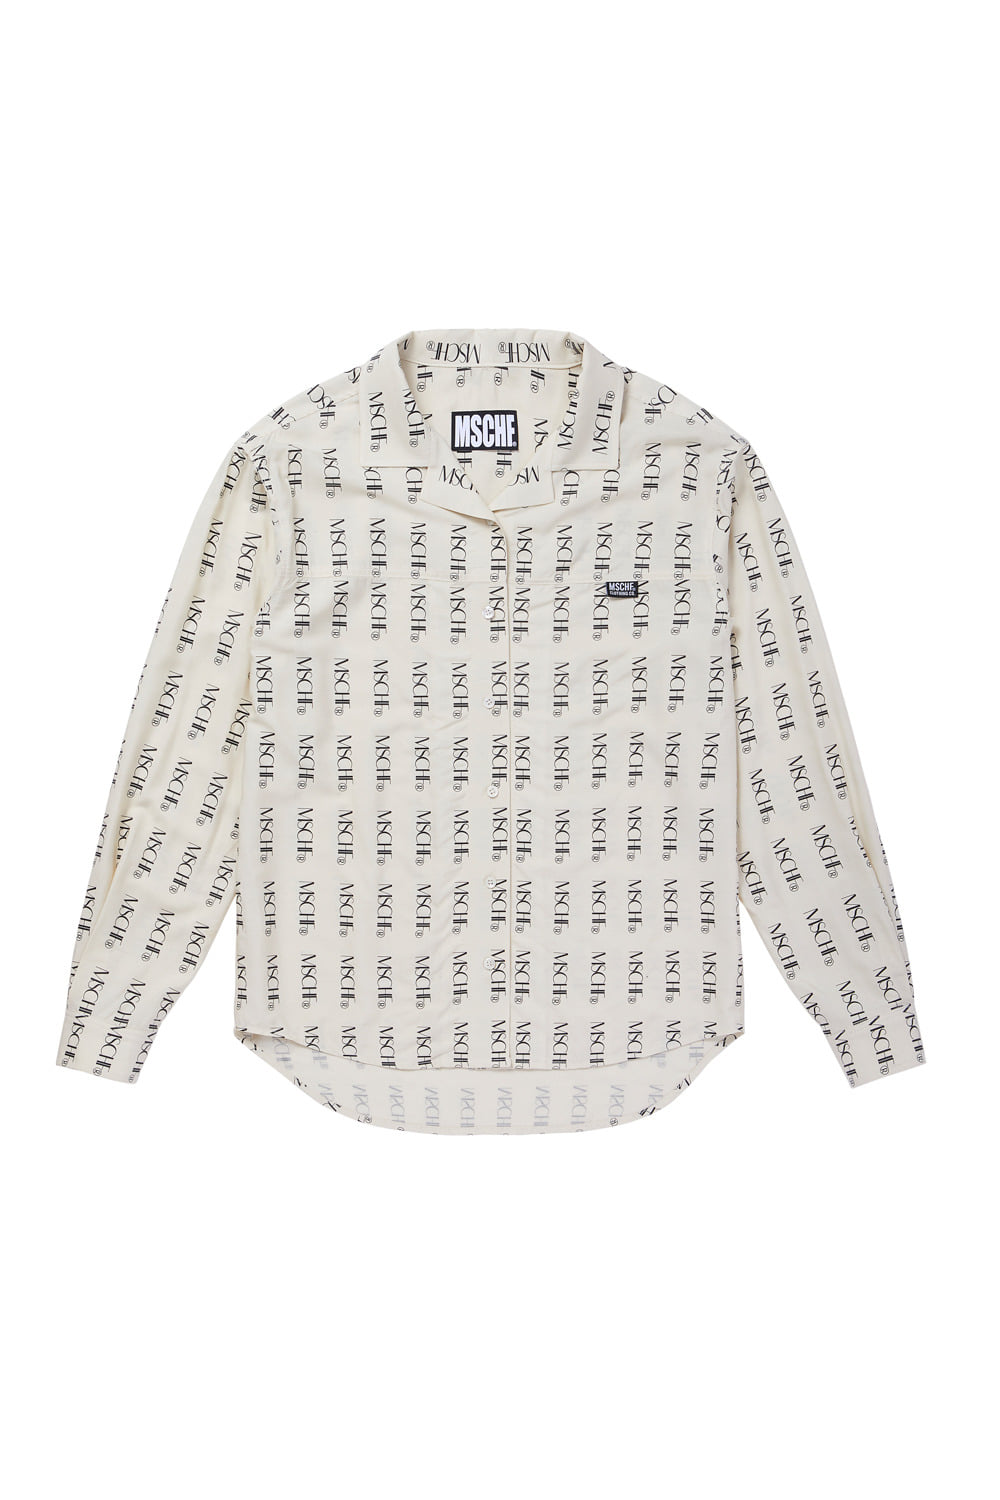 MSCHF REPEAT LOGO SHIRT_beige